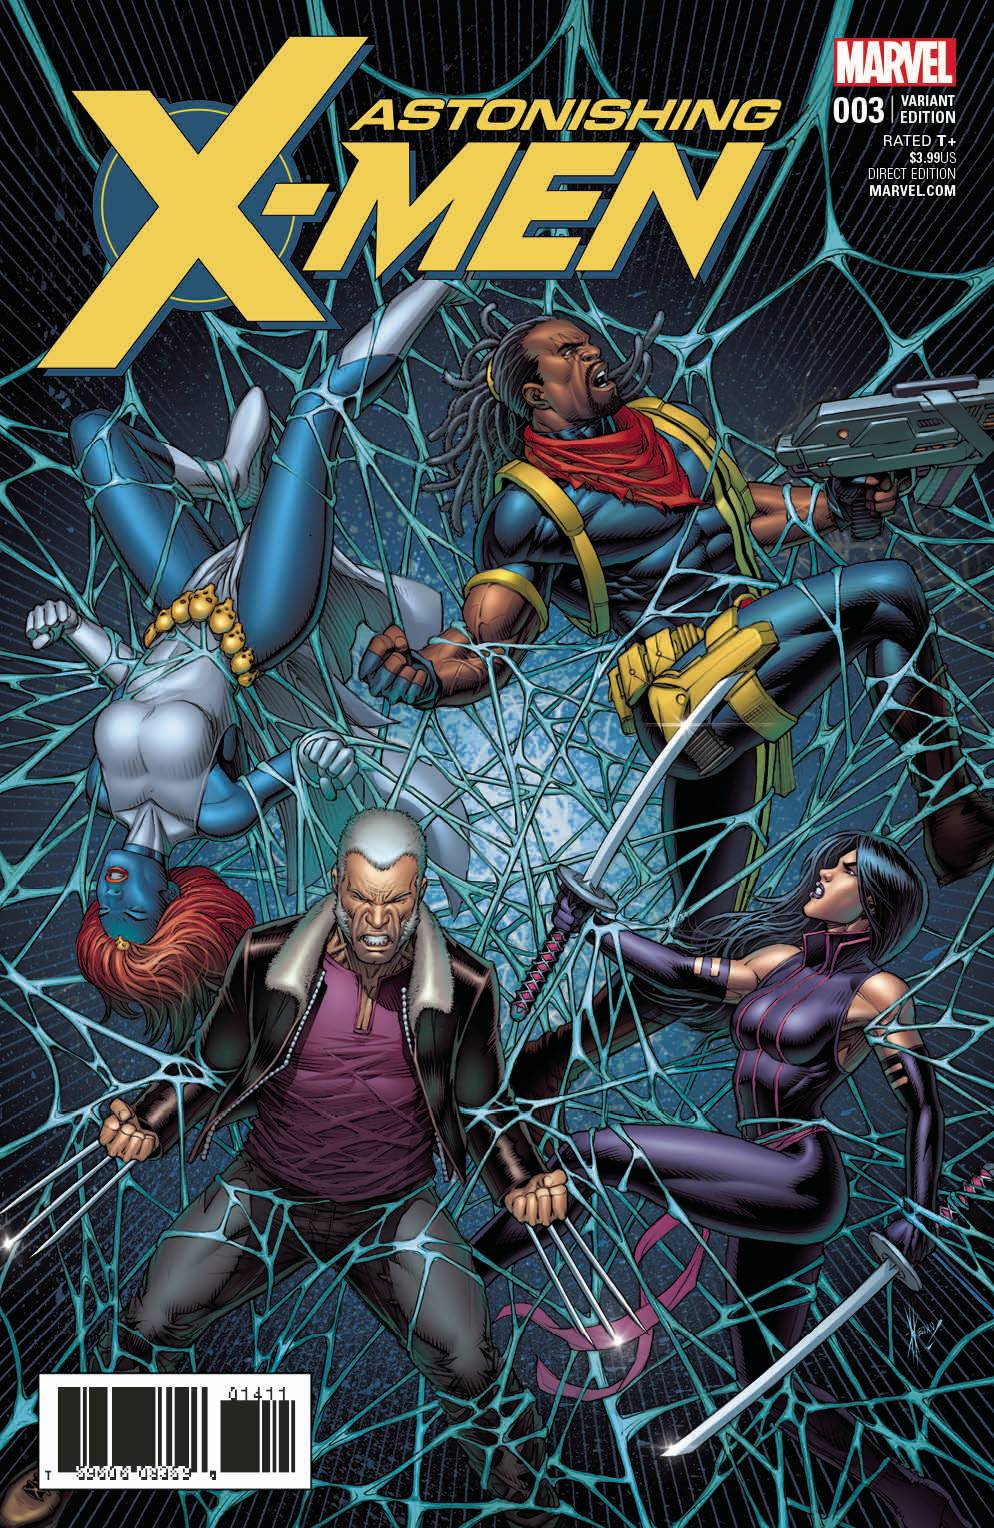 Astonishing X-Men #3 1:25 Keown Variant